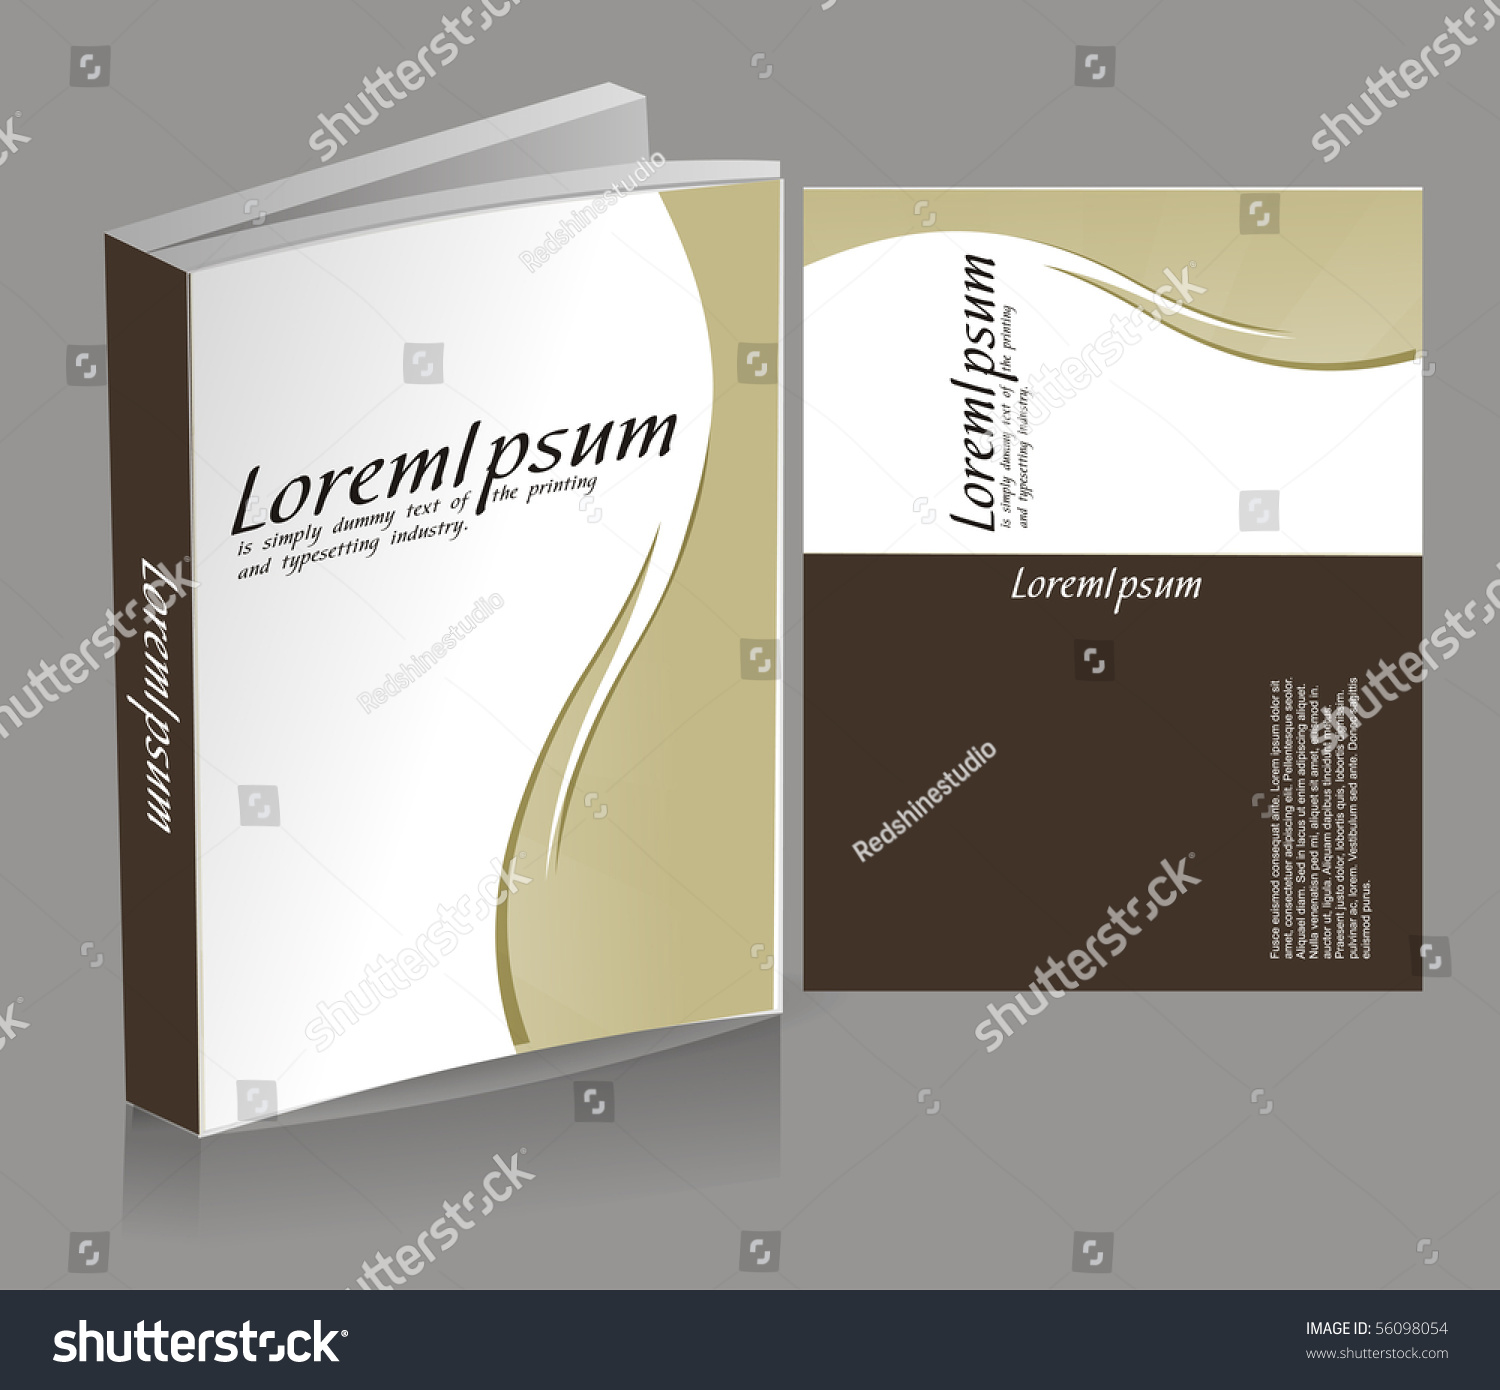 Book Cover Design Isolated Over Colorful Background : Book cover design isolated over colorful background 스톡 벡터